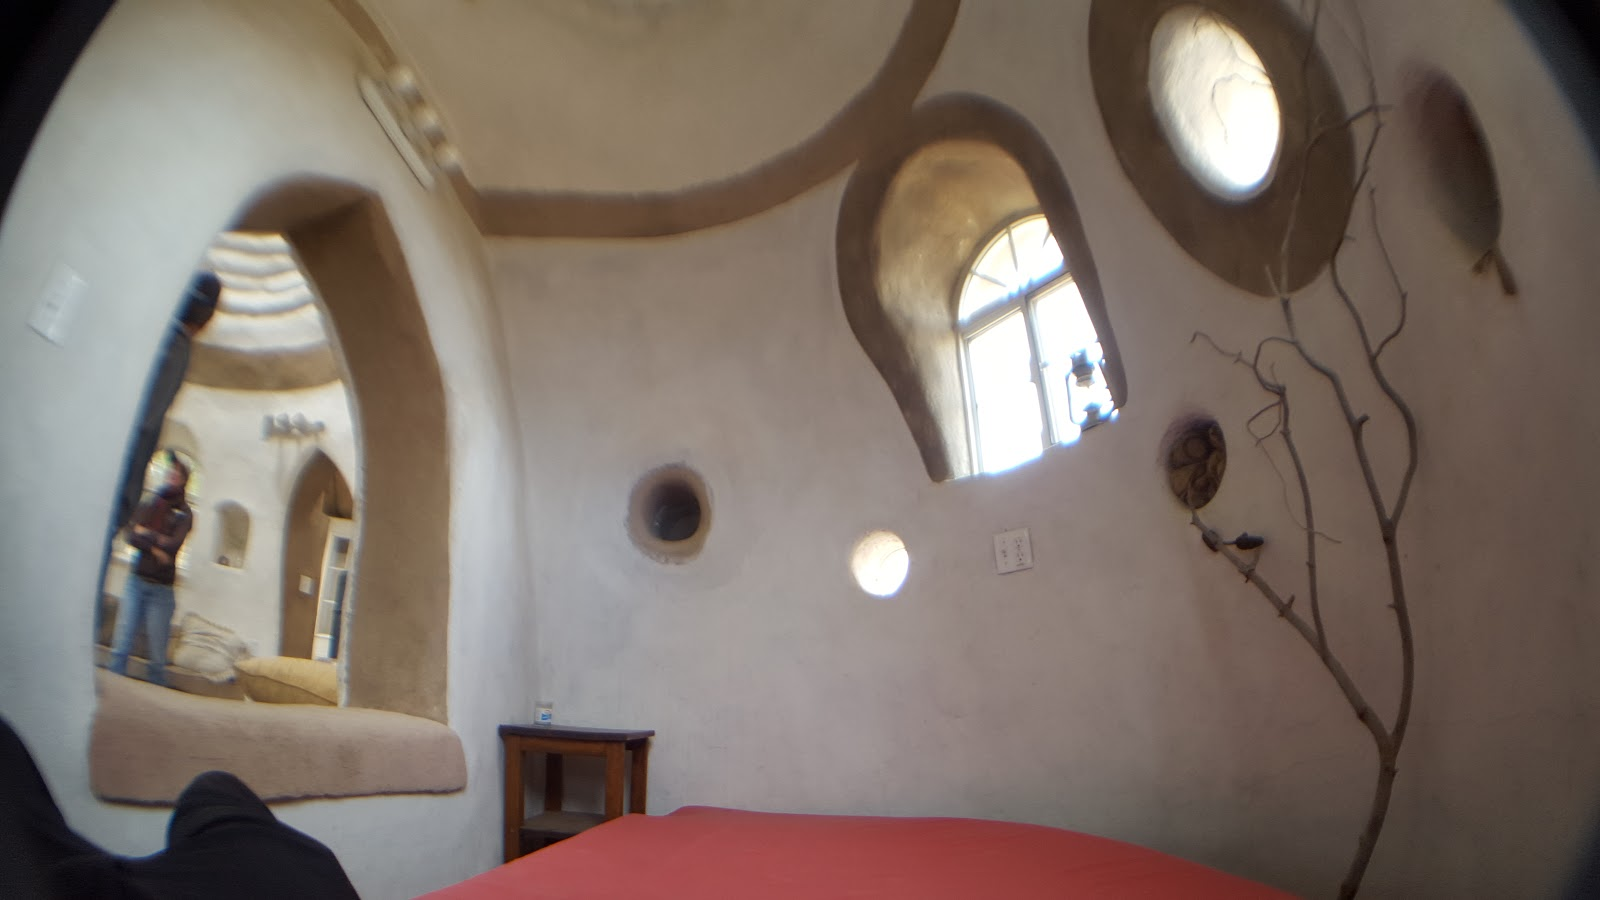 Scott's Superadobe Build Across Time: Cal-Earth Open House on